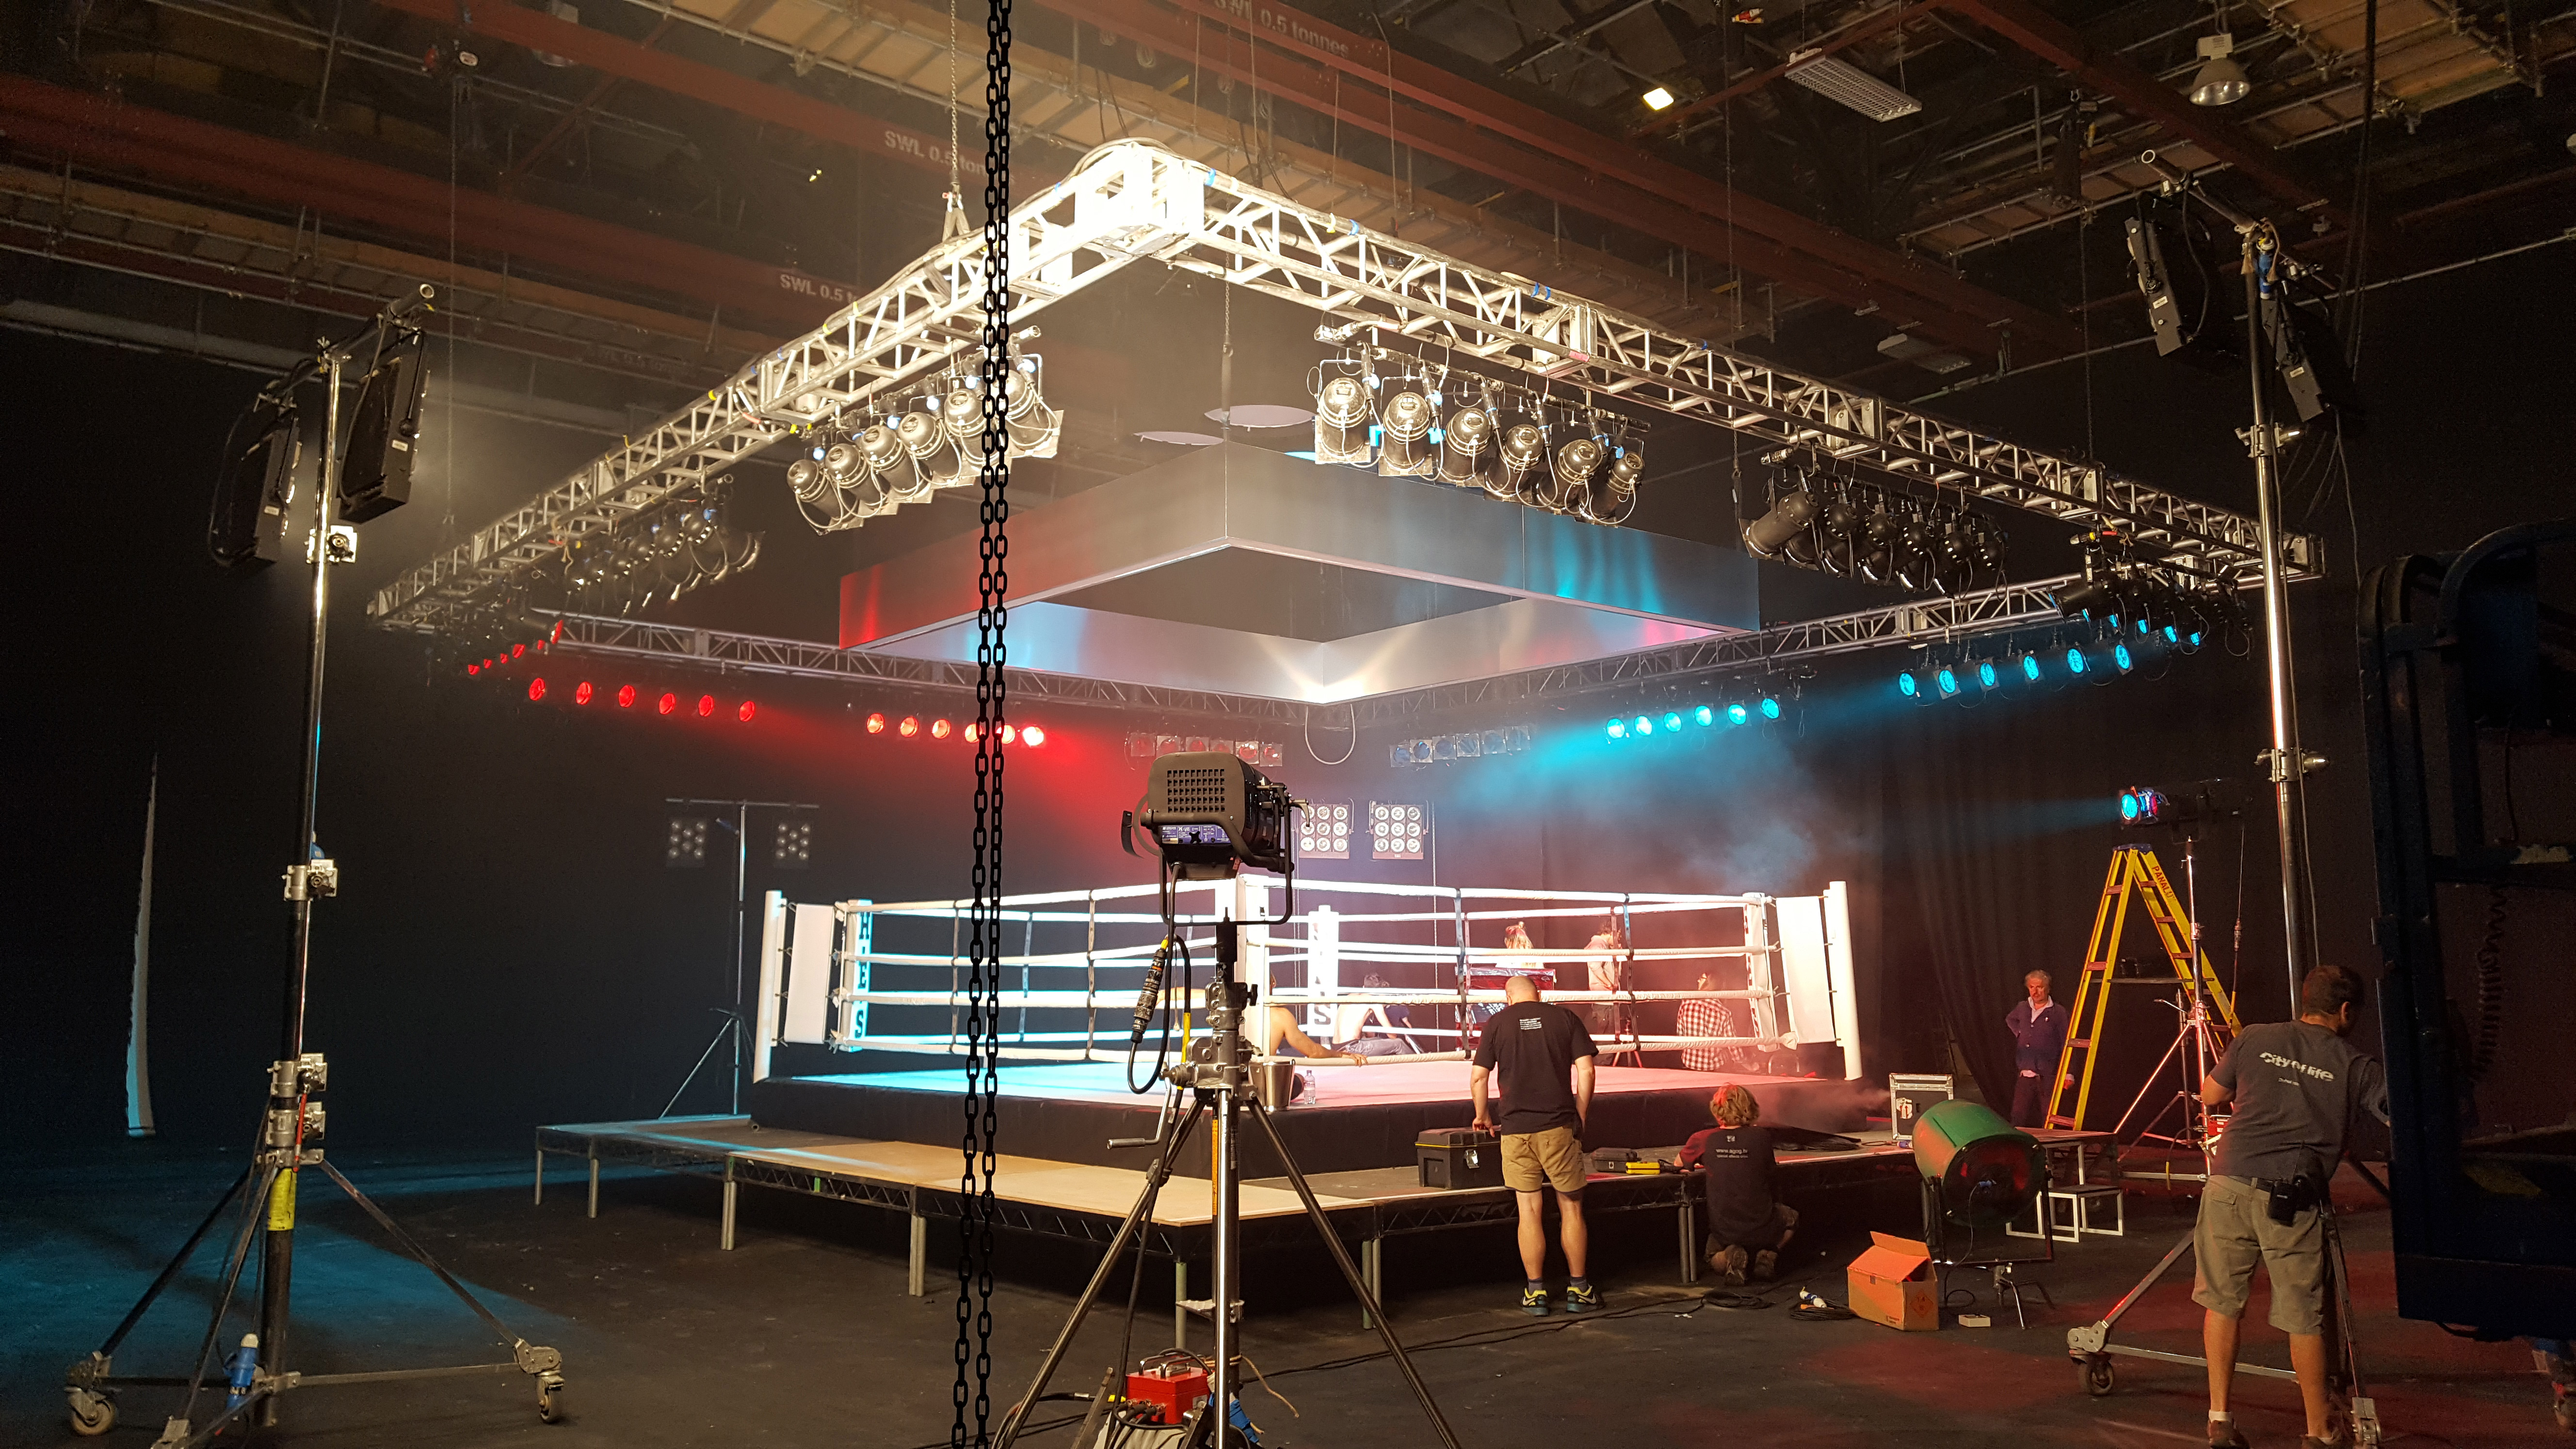 Side view of the stage lighting pipe grids set up above a boxing ring stage with red and blue spotlights.